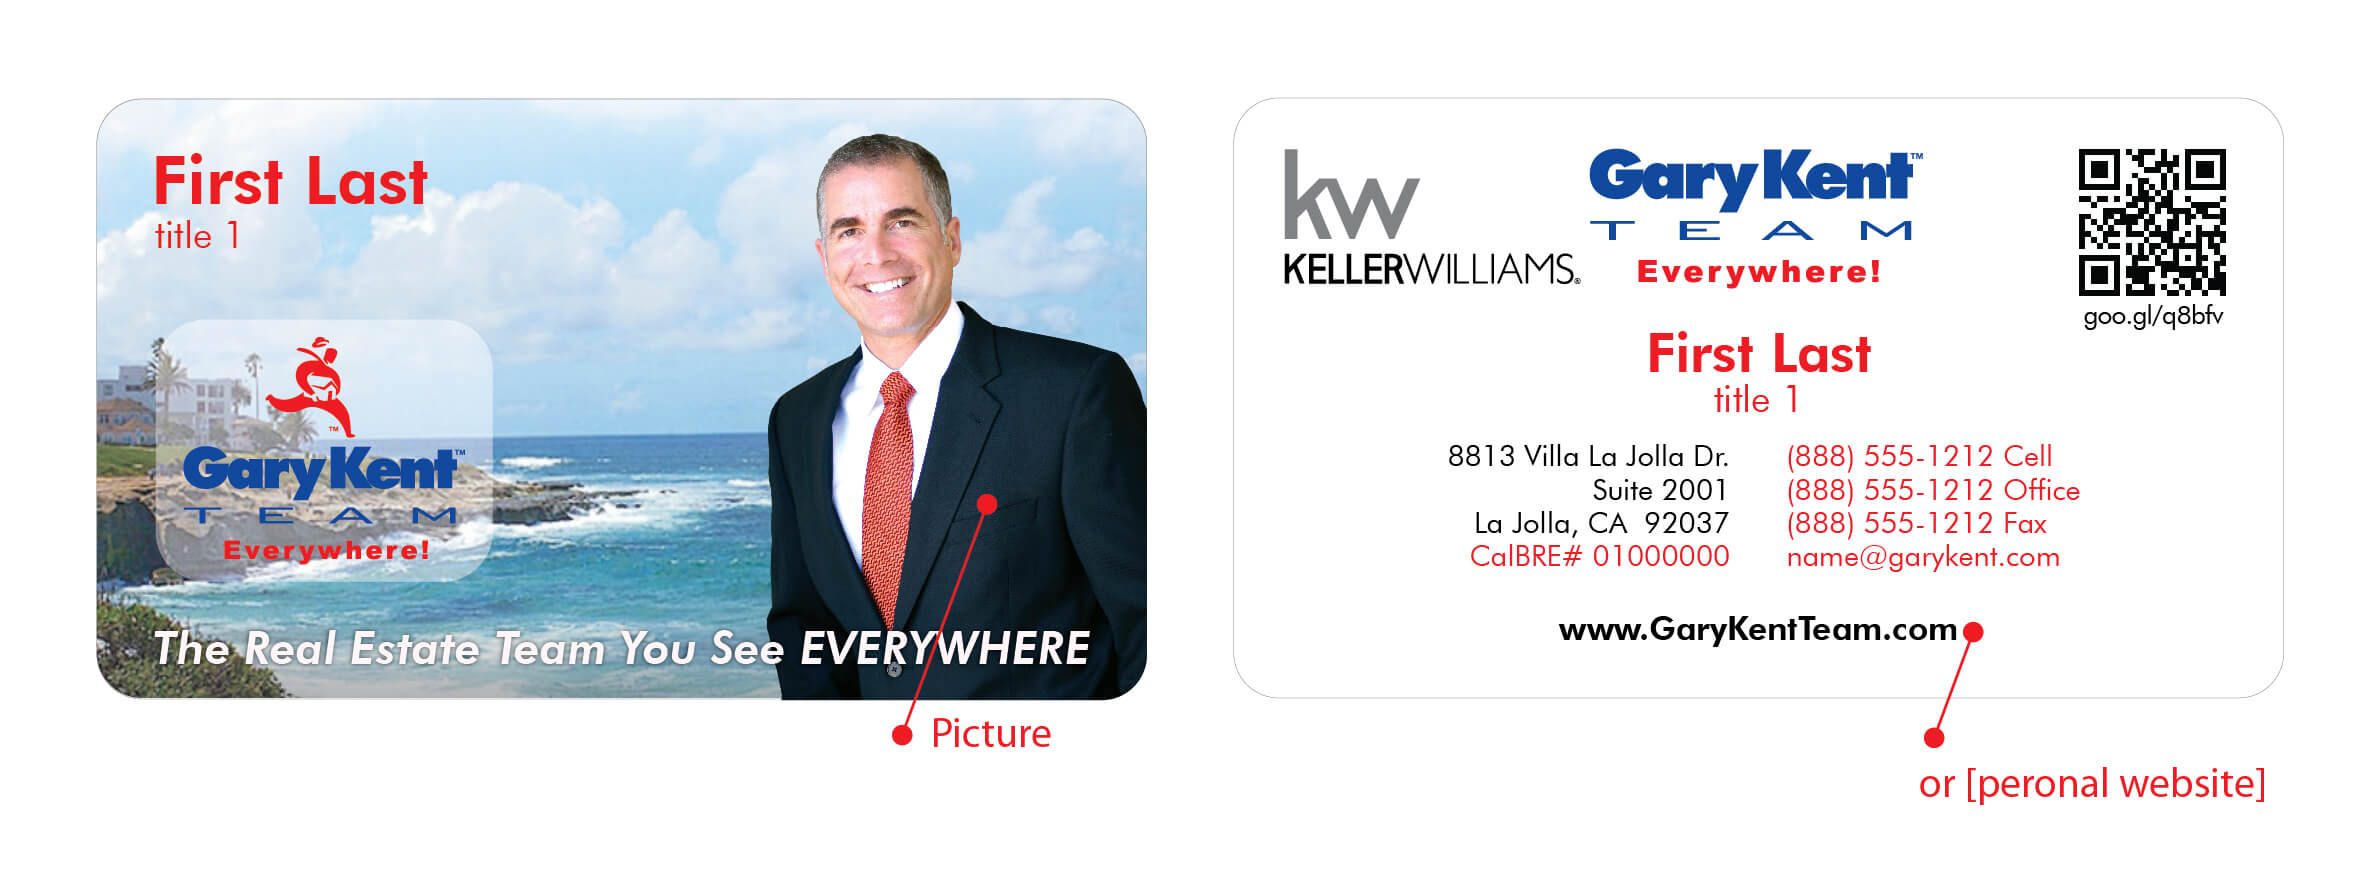 Business card request form gary kent real estate business card request form reheart Image collections